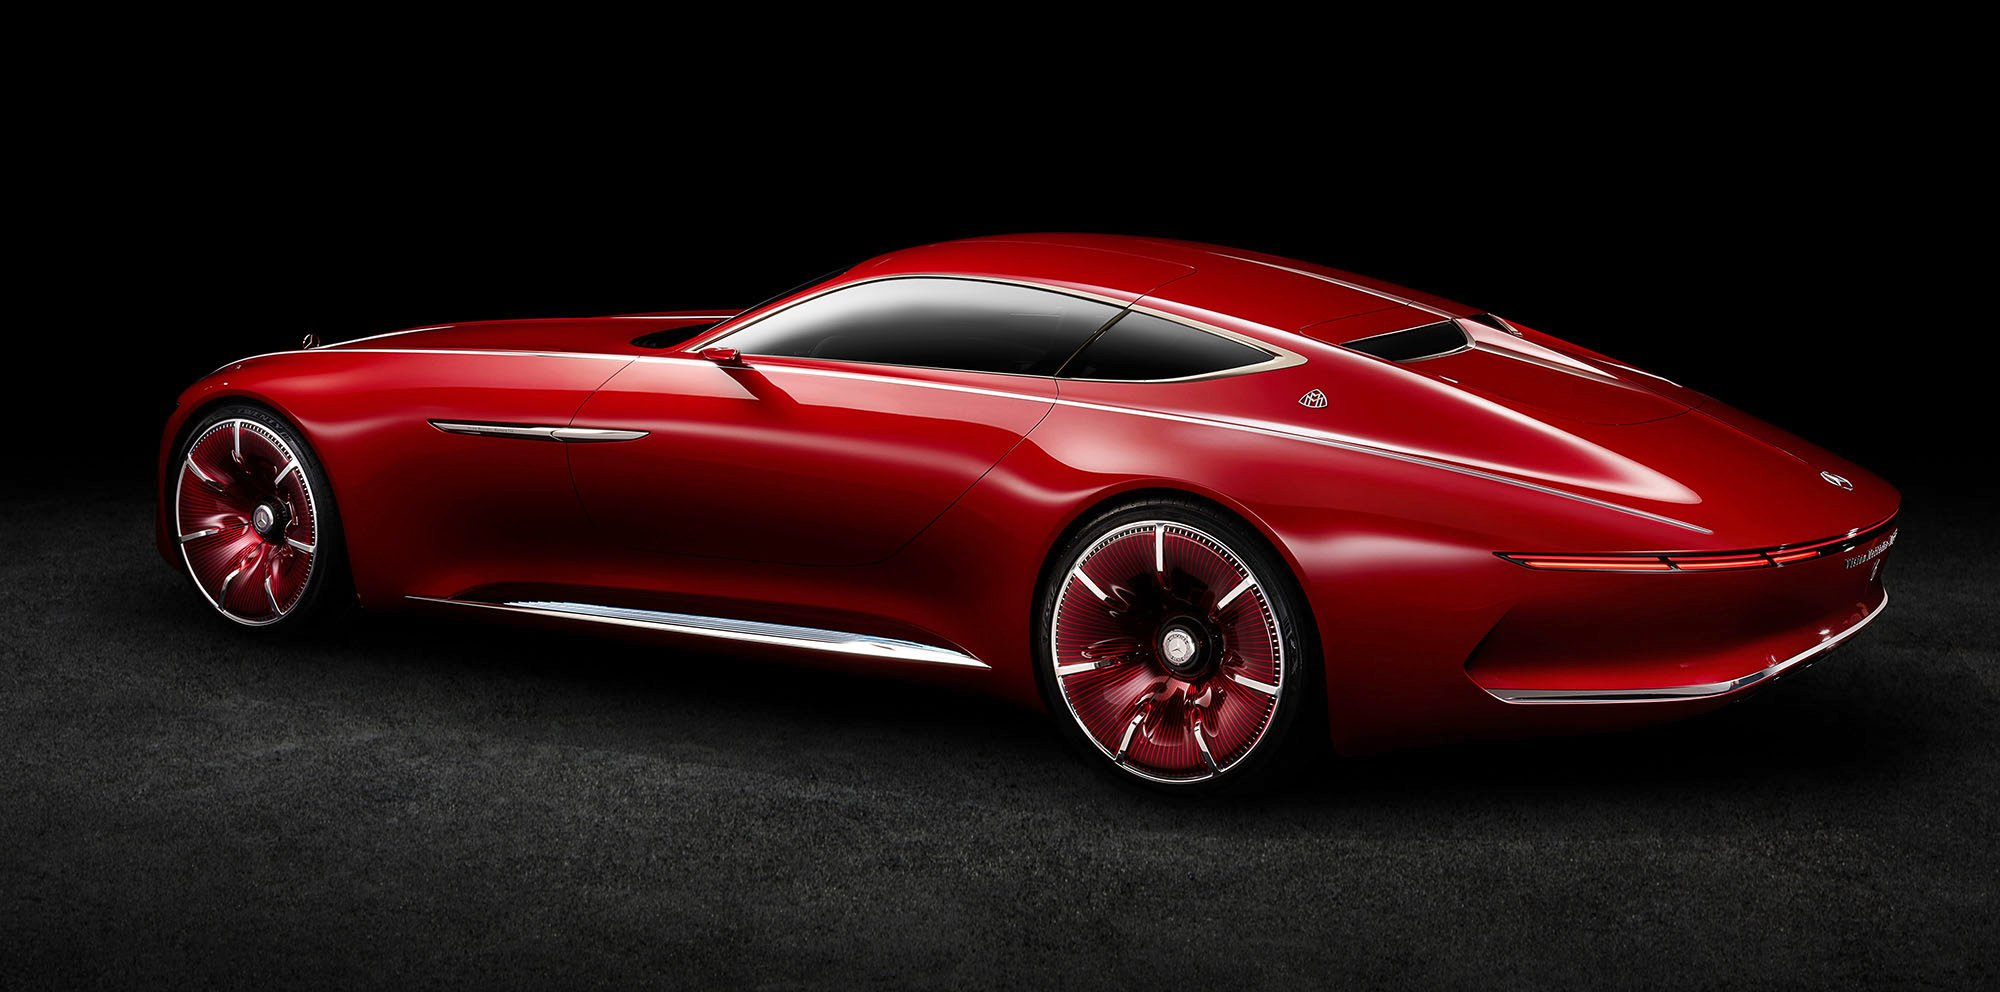 vision mercedes maybach 6 concept unveiled and detailed photos 1 of 9. Black Bedroom Furniture Sets. Home Design Ideas